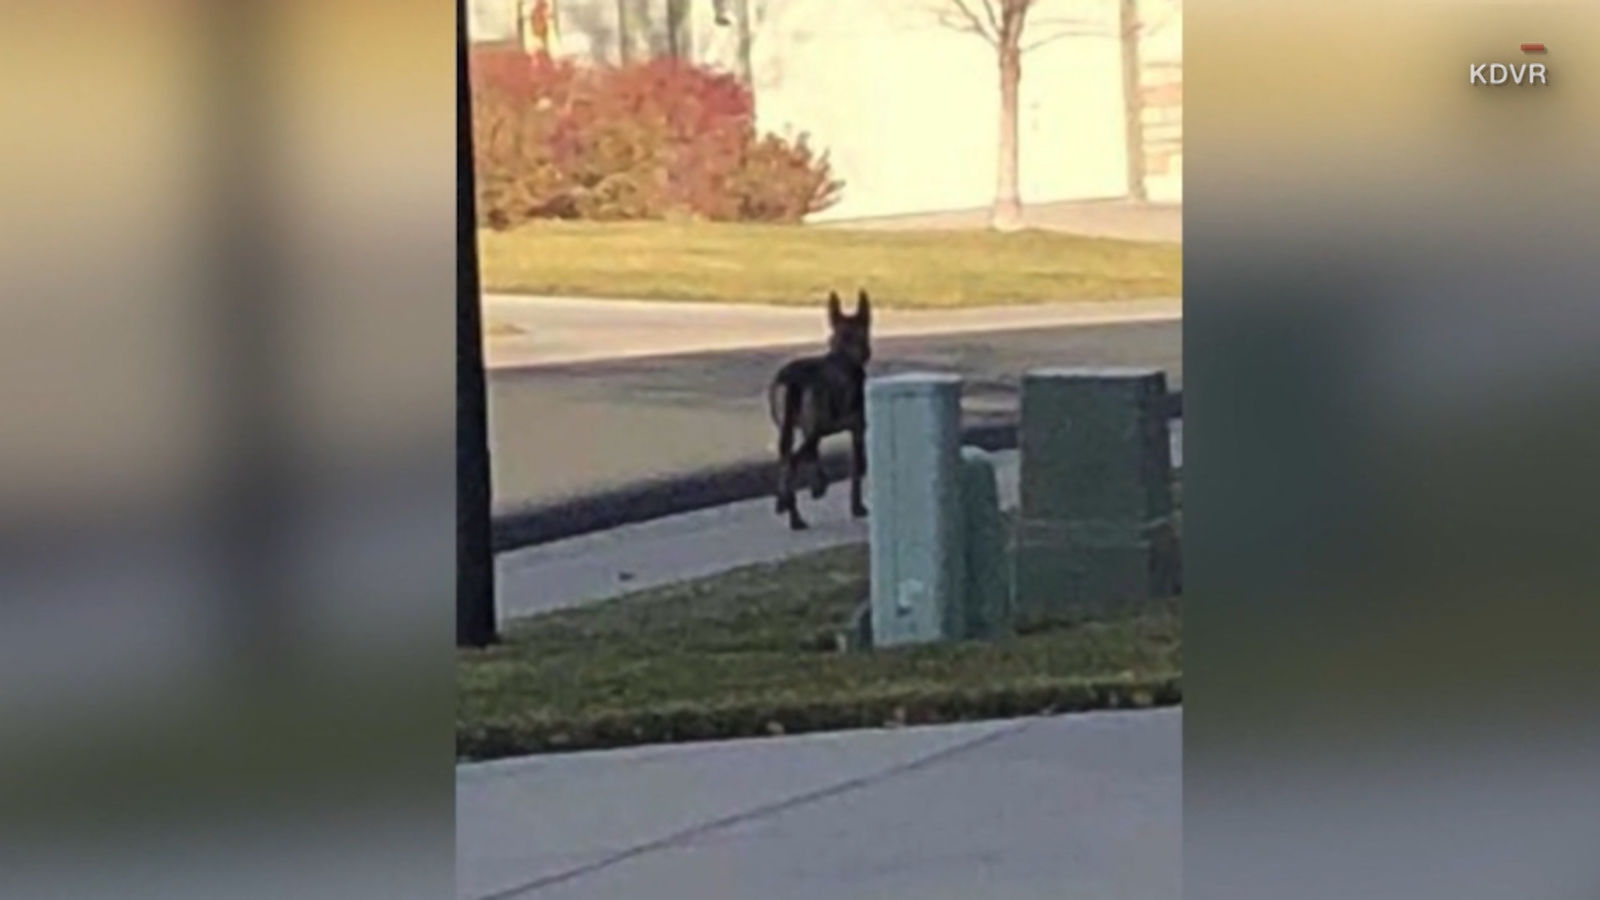 <p>A dog that was found abandoned in a Colorado neighborhood has found a new leash on life after a sheriff's deputy adopted her. (Courtesy: KDVR, CNN Newsource){&nbsp;}<br></p>